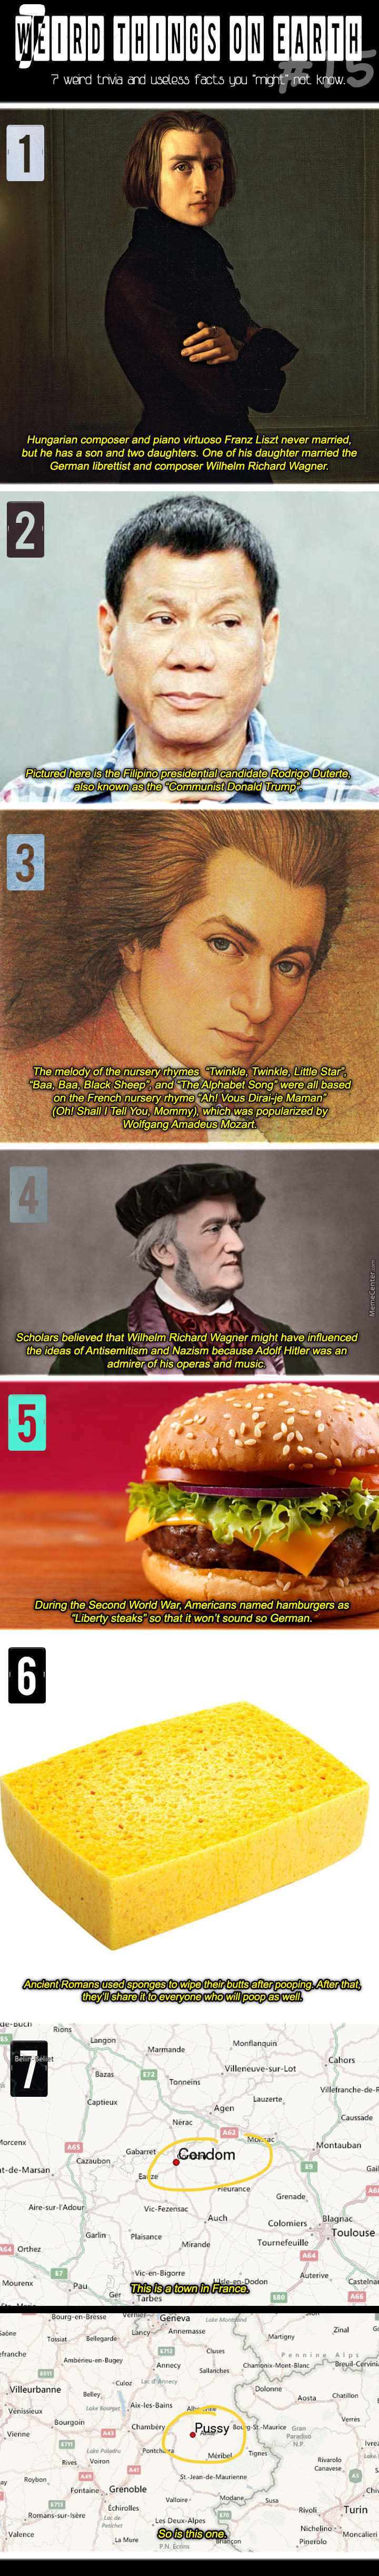 7 Weird Things On Earth #15